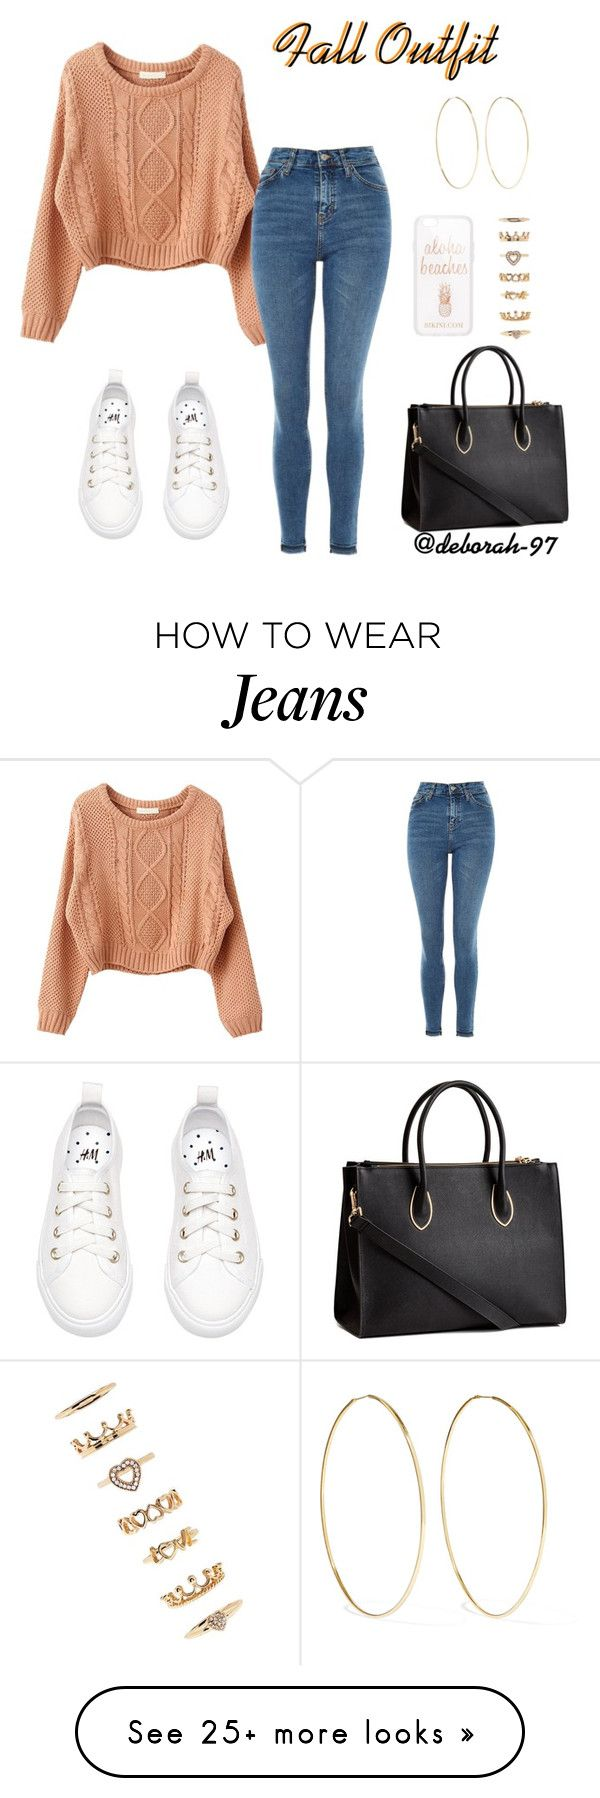 """""""Fall Outfit #8"""" by deborah-97 on Polyvore featuring Topshop, Forever 21, Magda Butrym and H&M"""